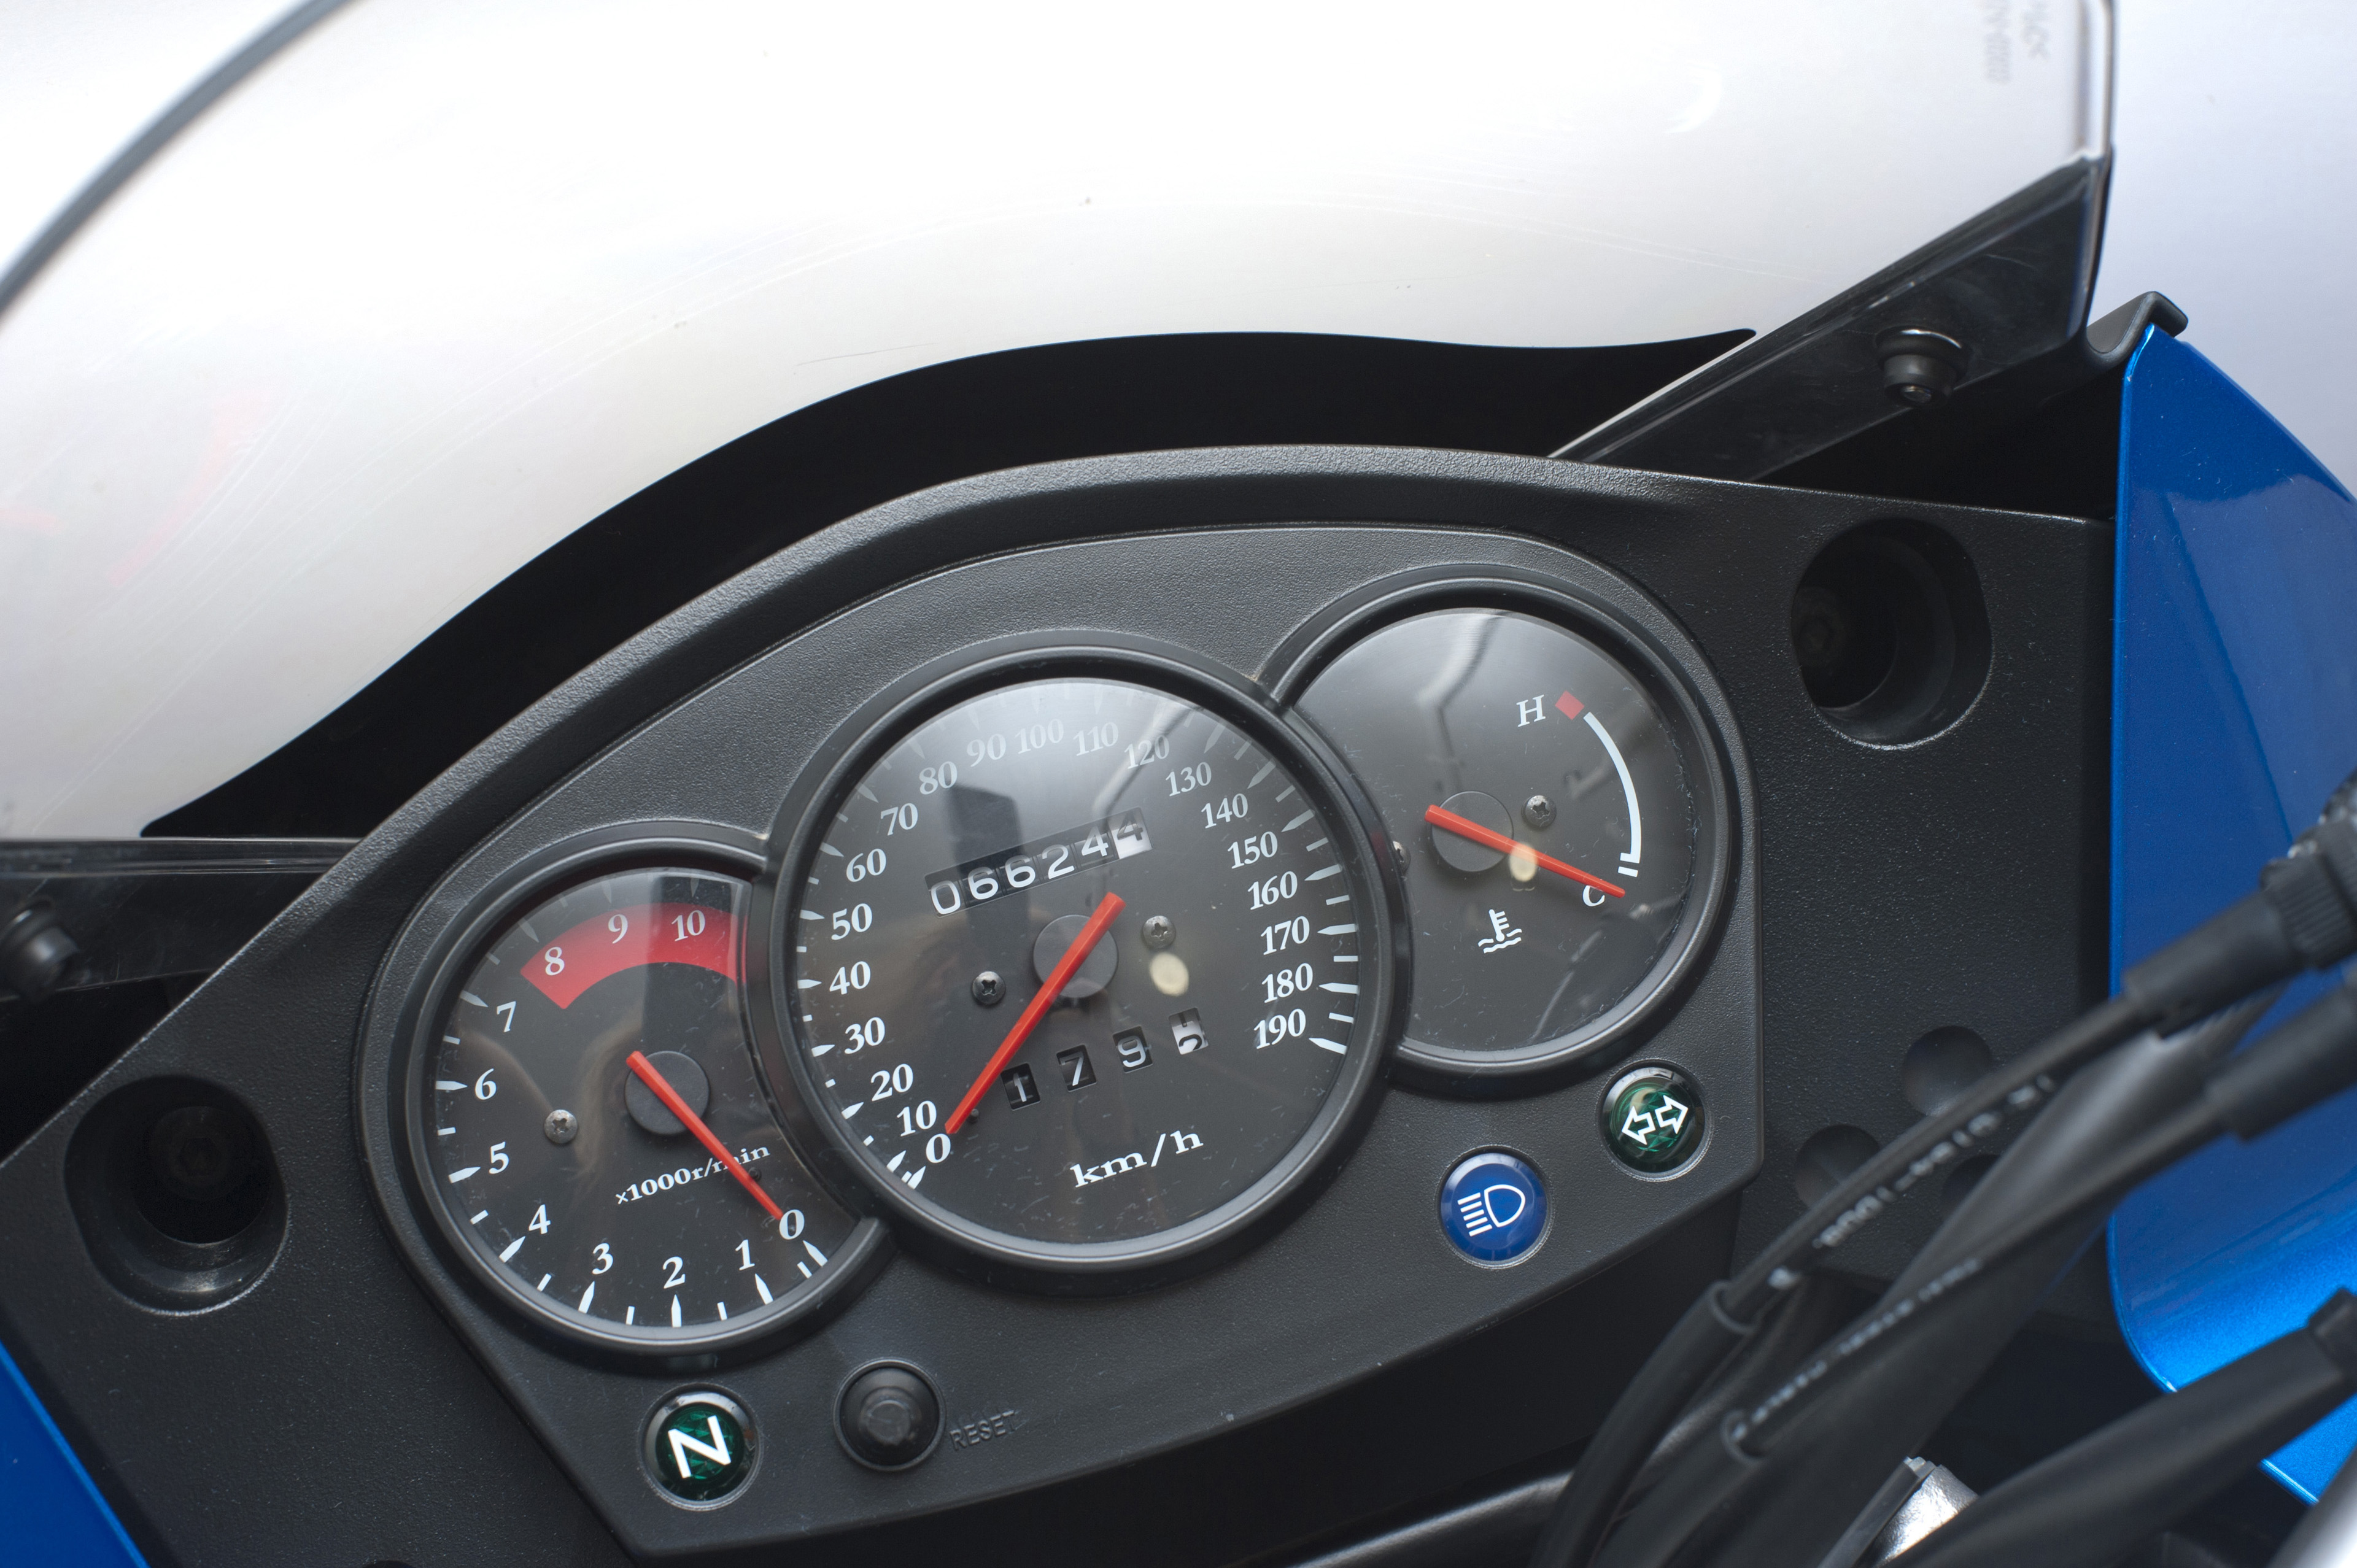 Close Up of Motorcycle Instrument Dash Panel Showing Speedometer, Tachometer, and Fuel Gauge